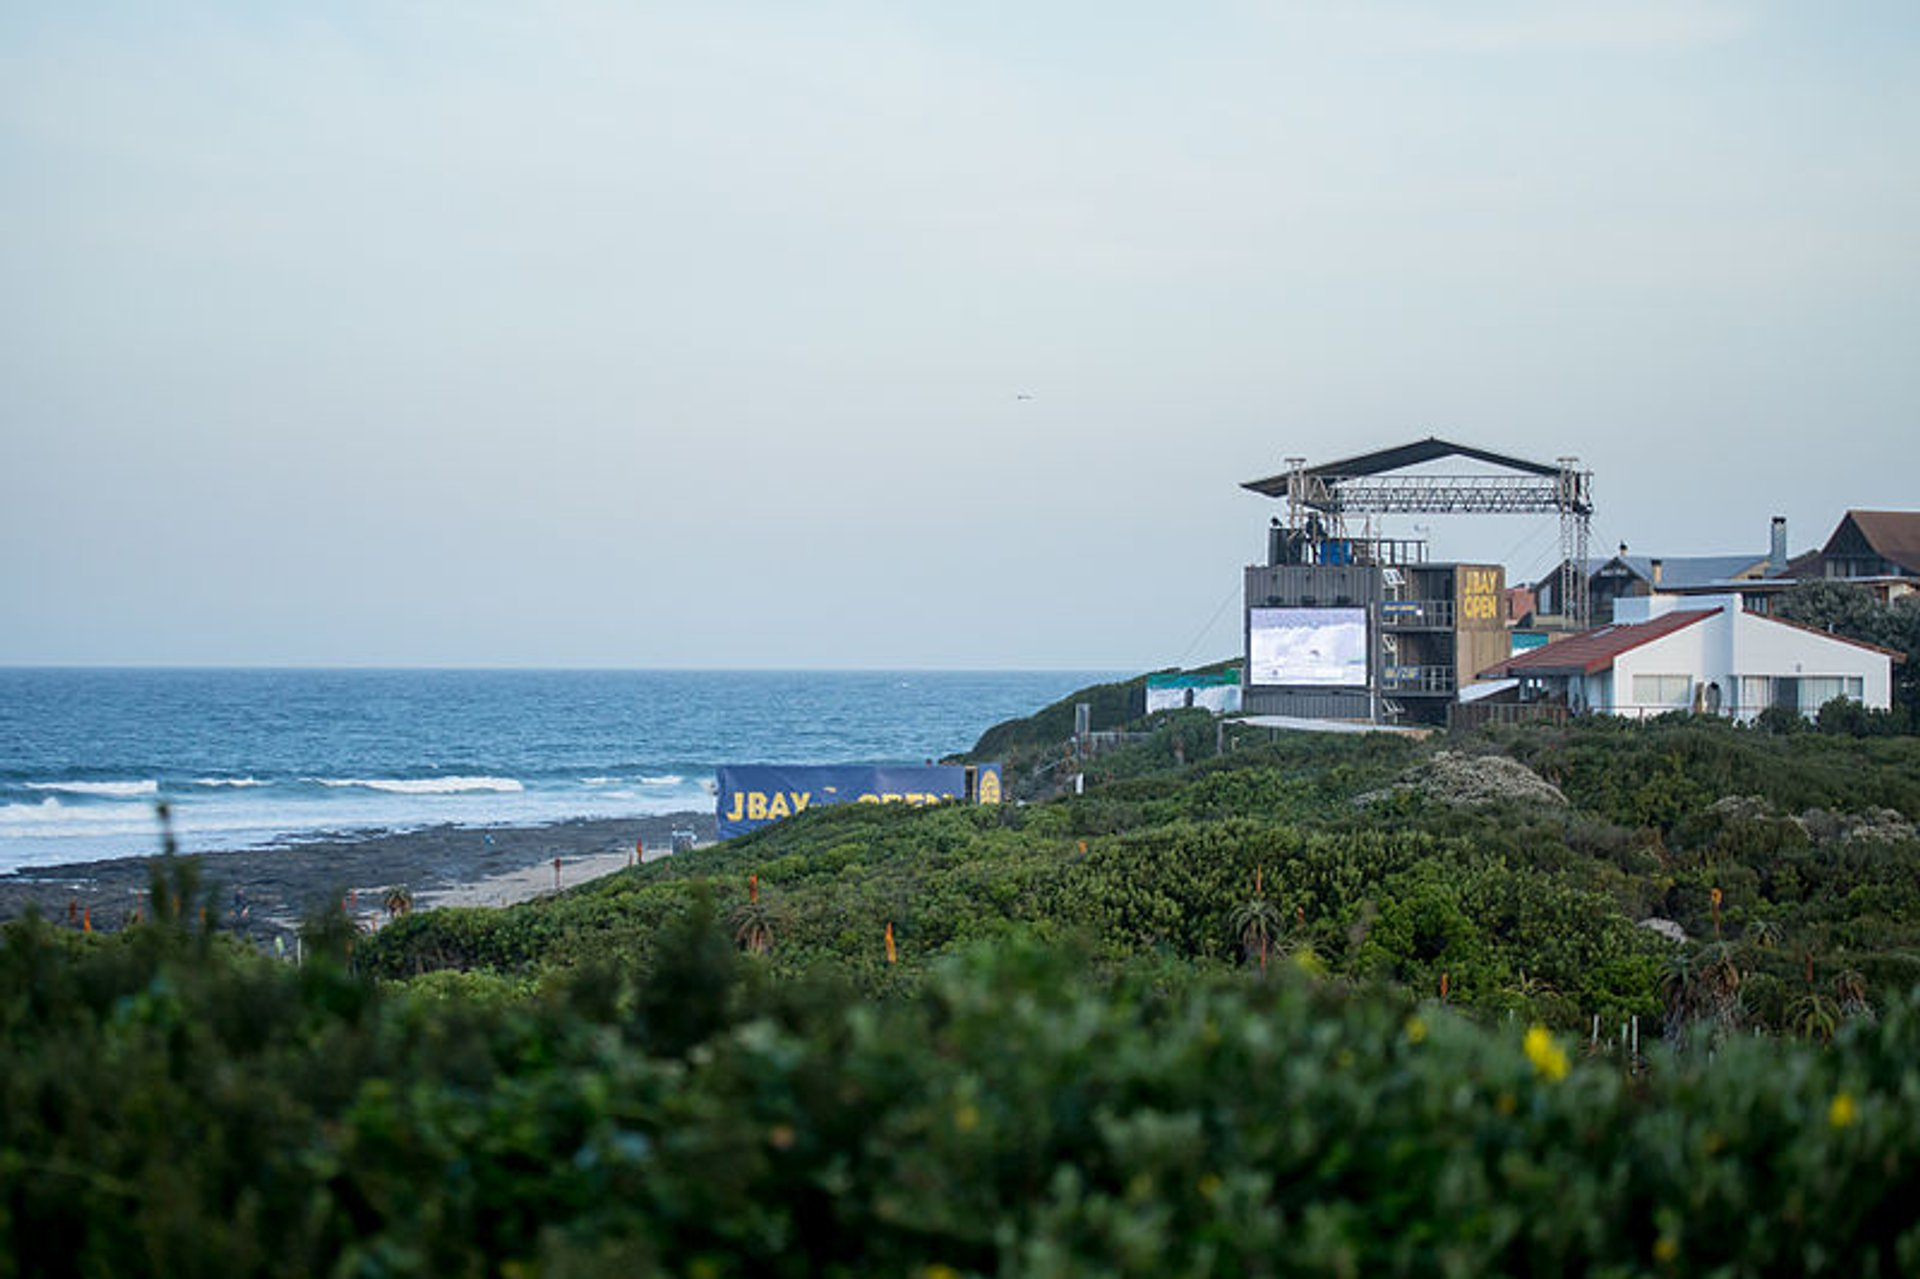 J-Bay Open in South Africa - Best Season 2020